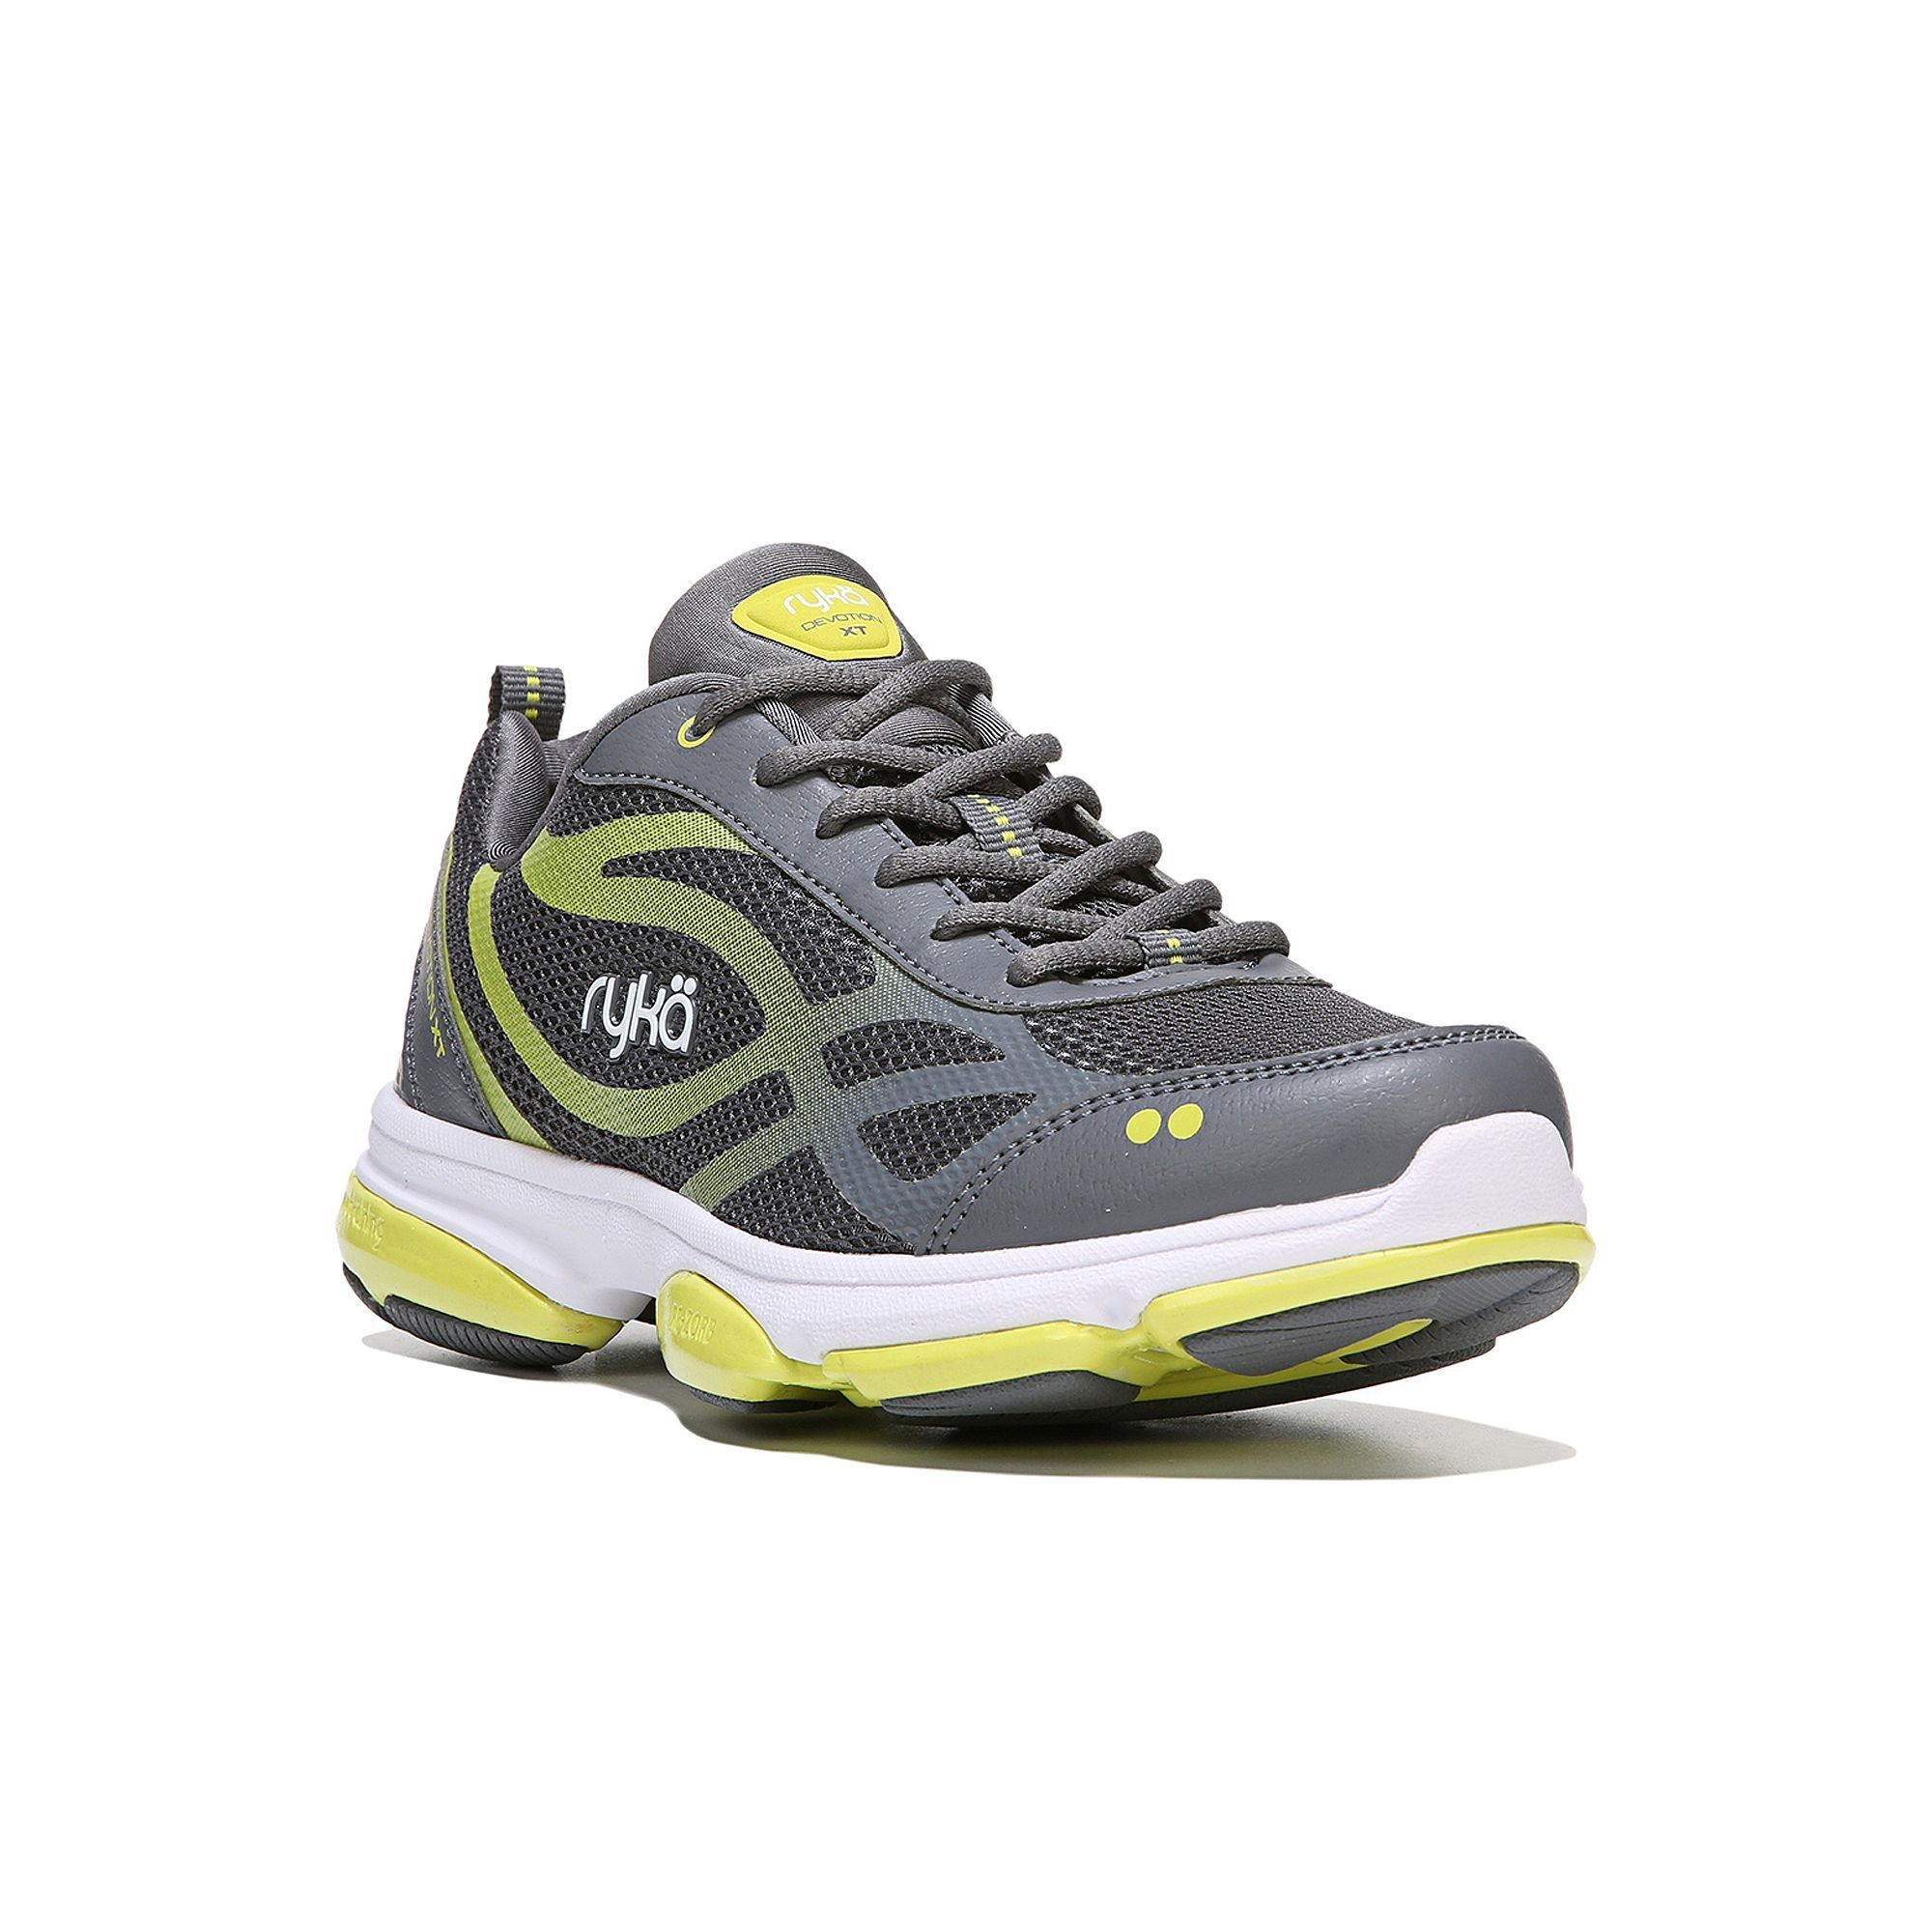 really for sale free shipping Cheapest Ryka Devotion XT Women's Cross ... Training Shoes 2014 unisex for sale 2014 new for sale sale lowest price Qt0LEo